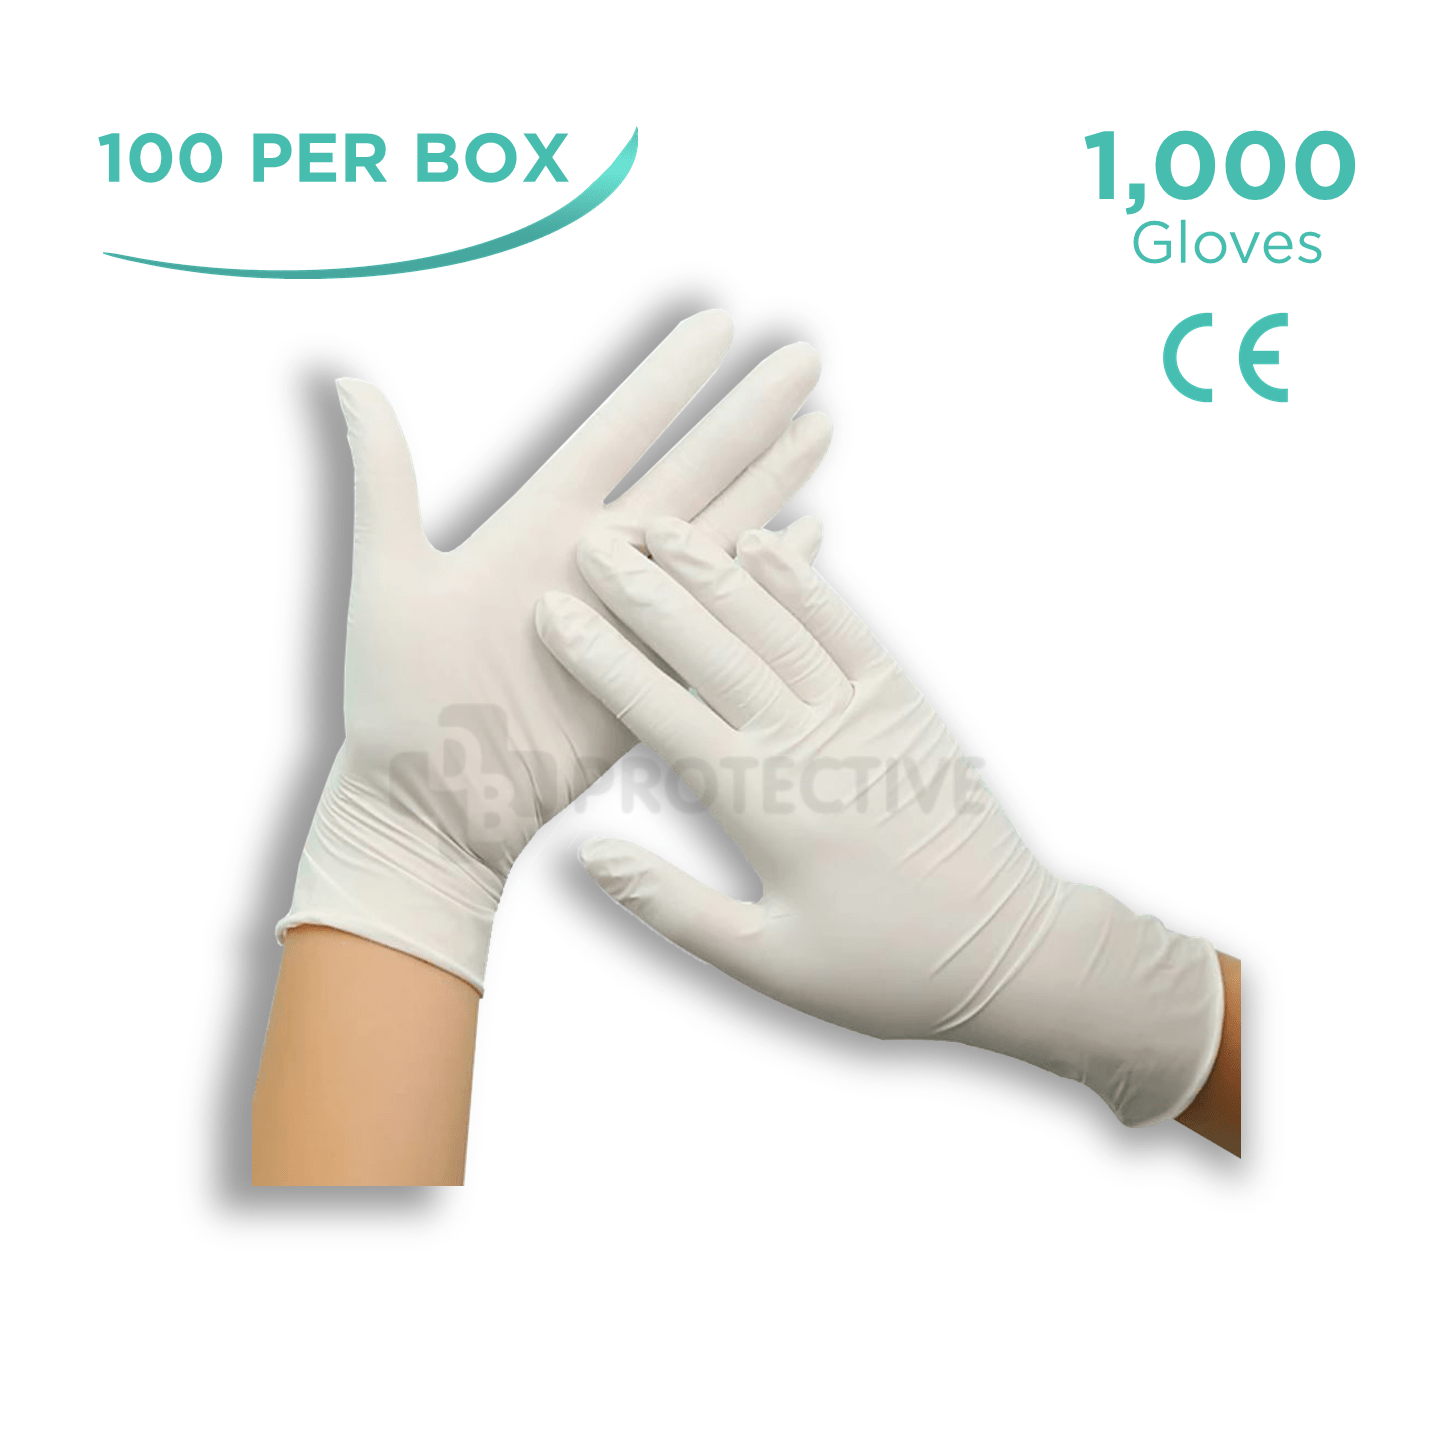 Latex Gloves - Pack of 1,000. - USA Medical Supply - DB Protective